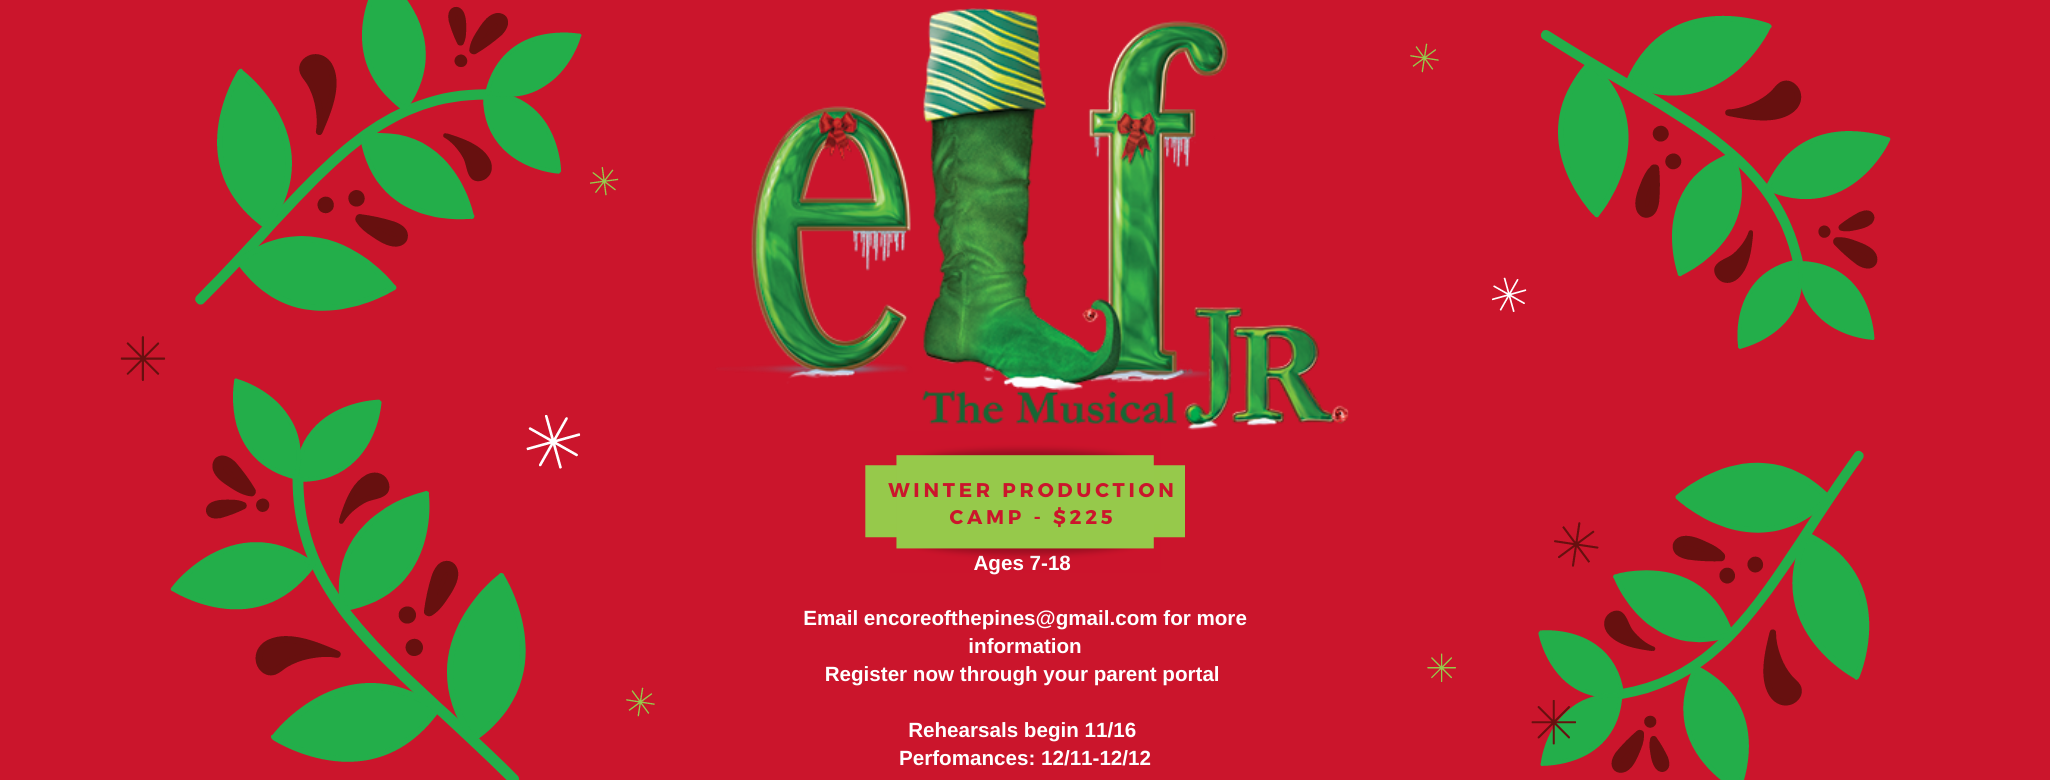 Copy of Elf Jr. Poster